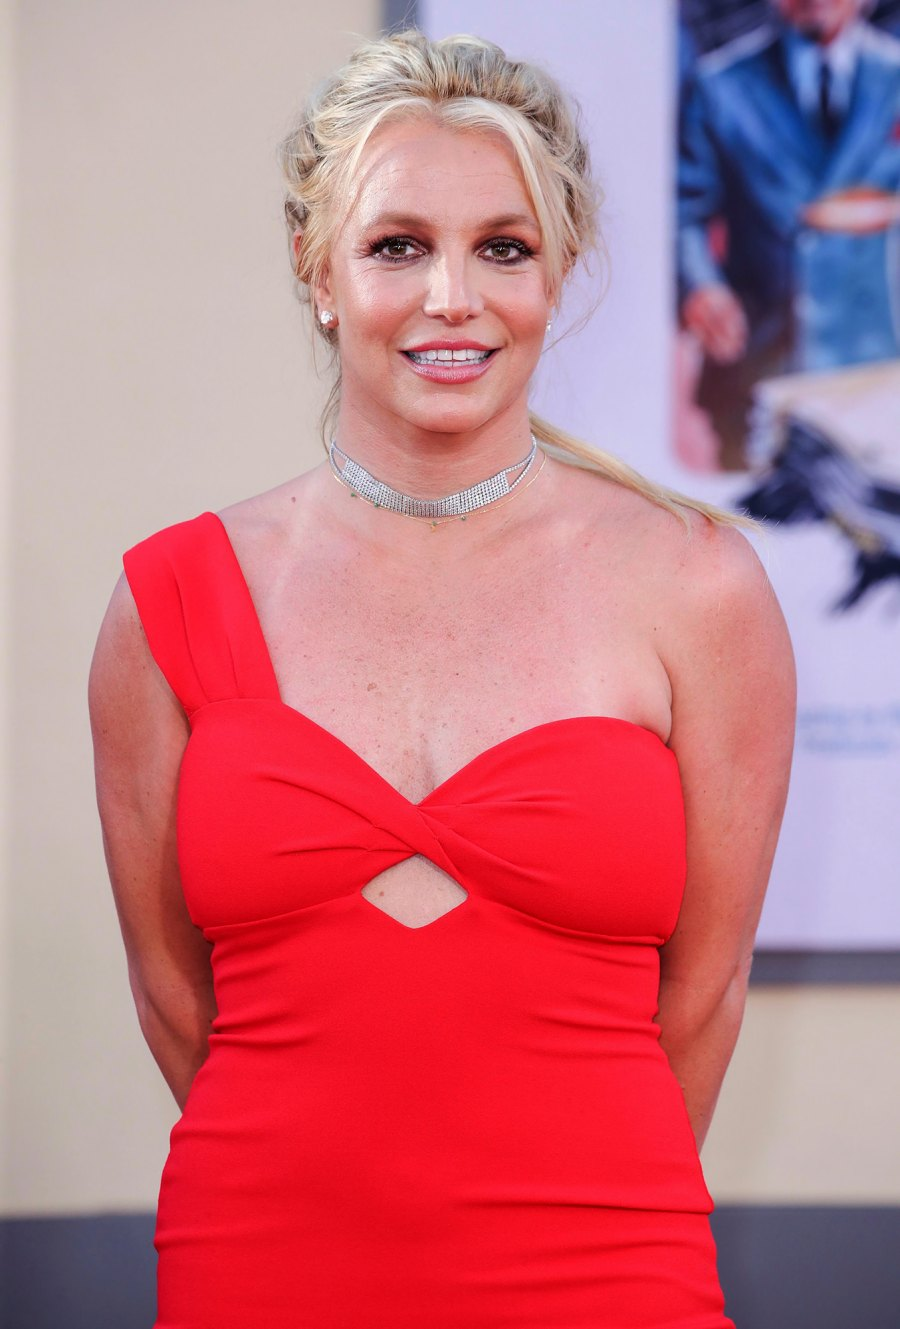 Britney Spears Stars Who've Spoken Out About Getting the COVID-19 Vaccine